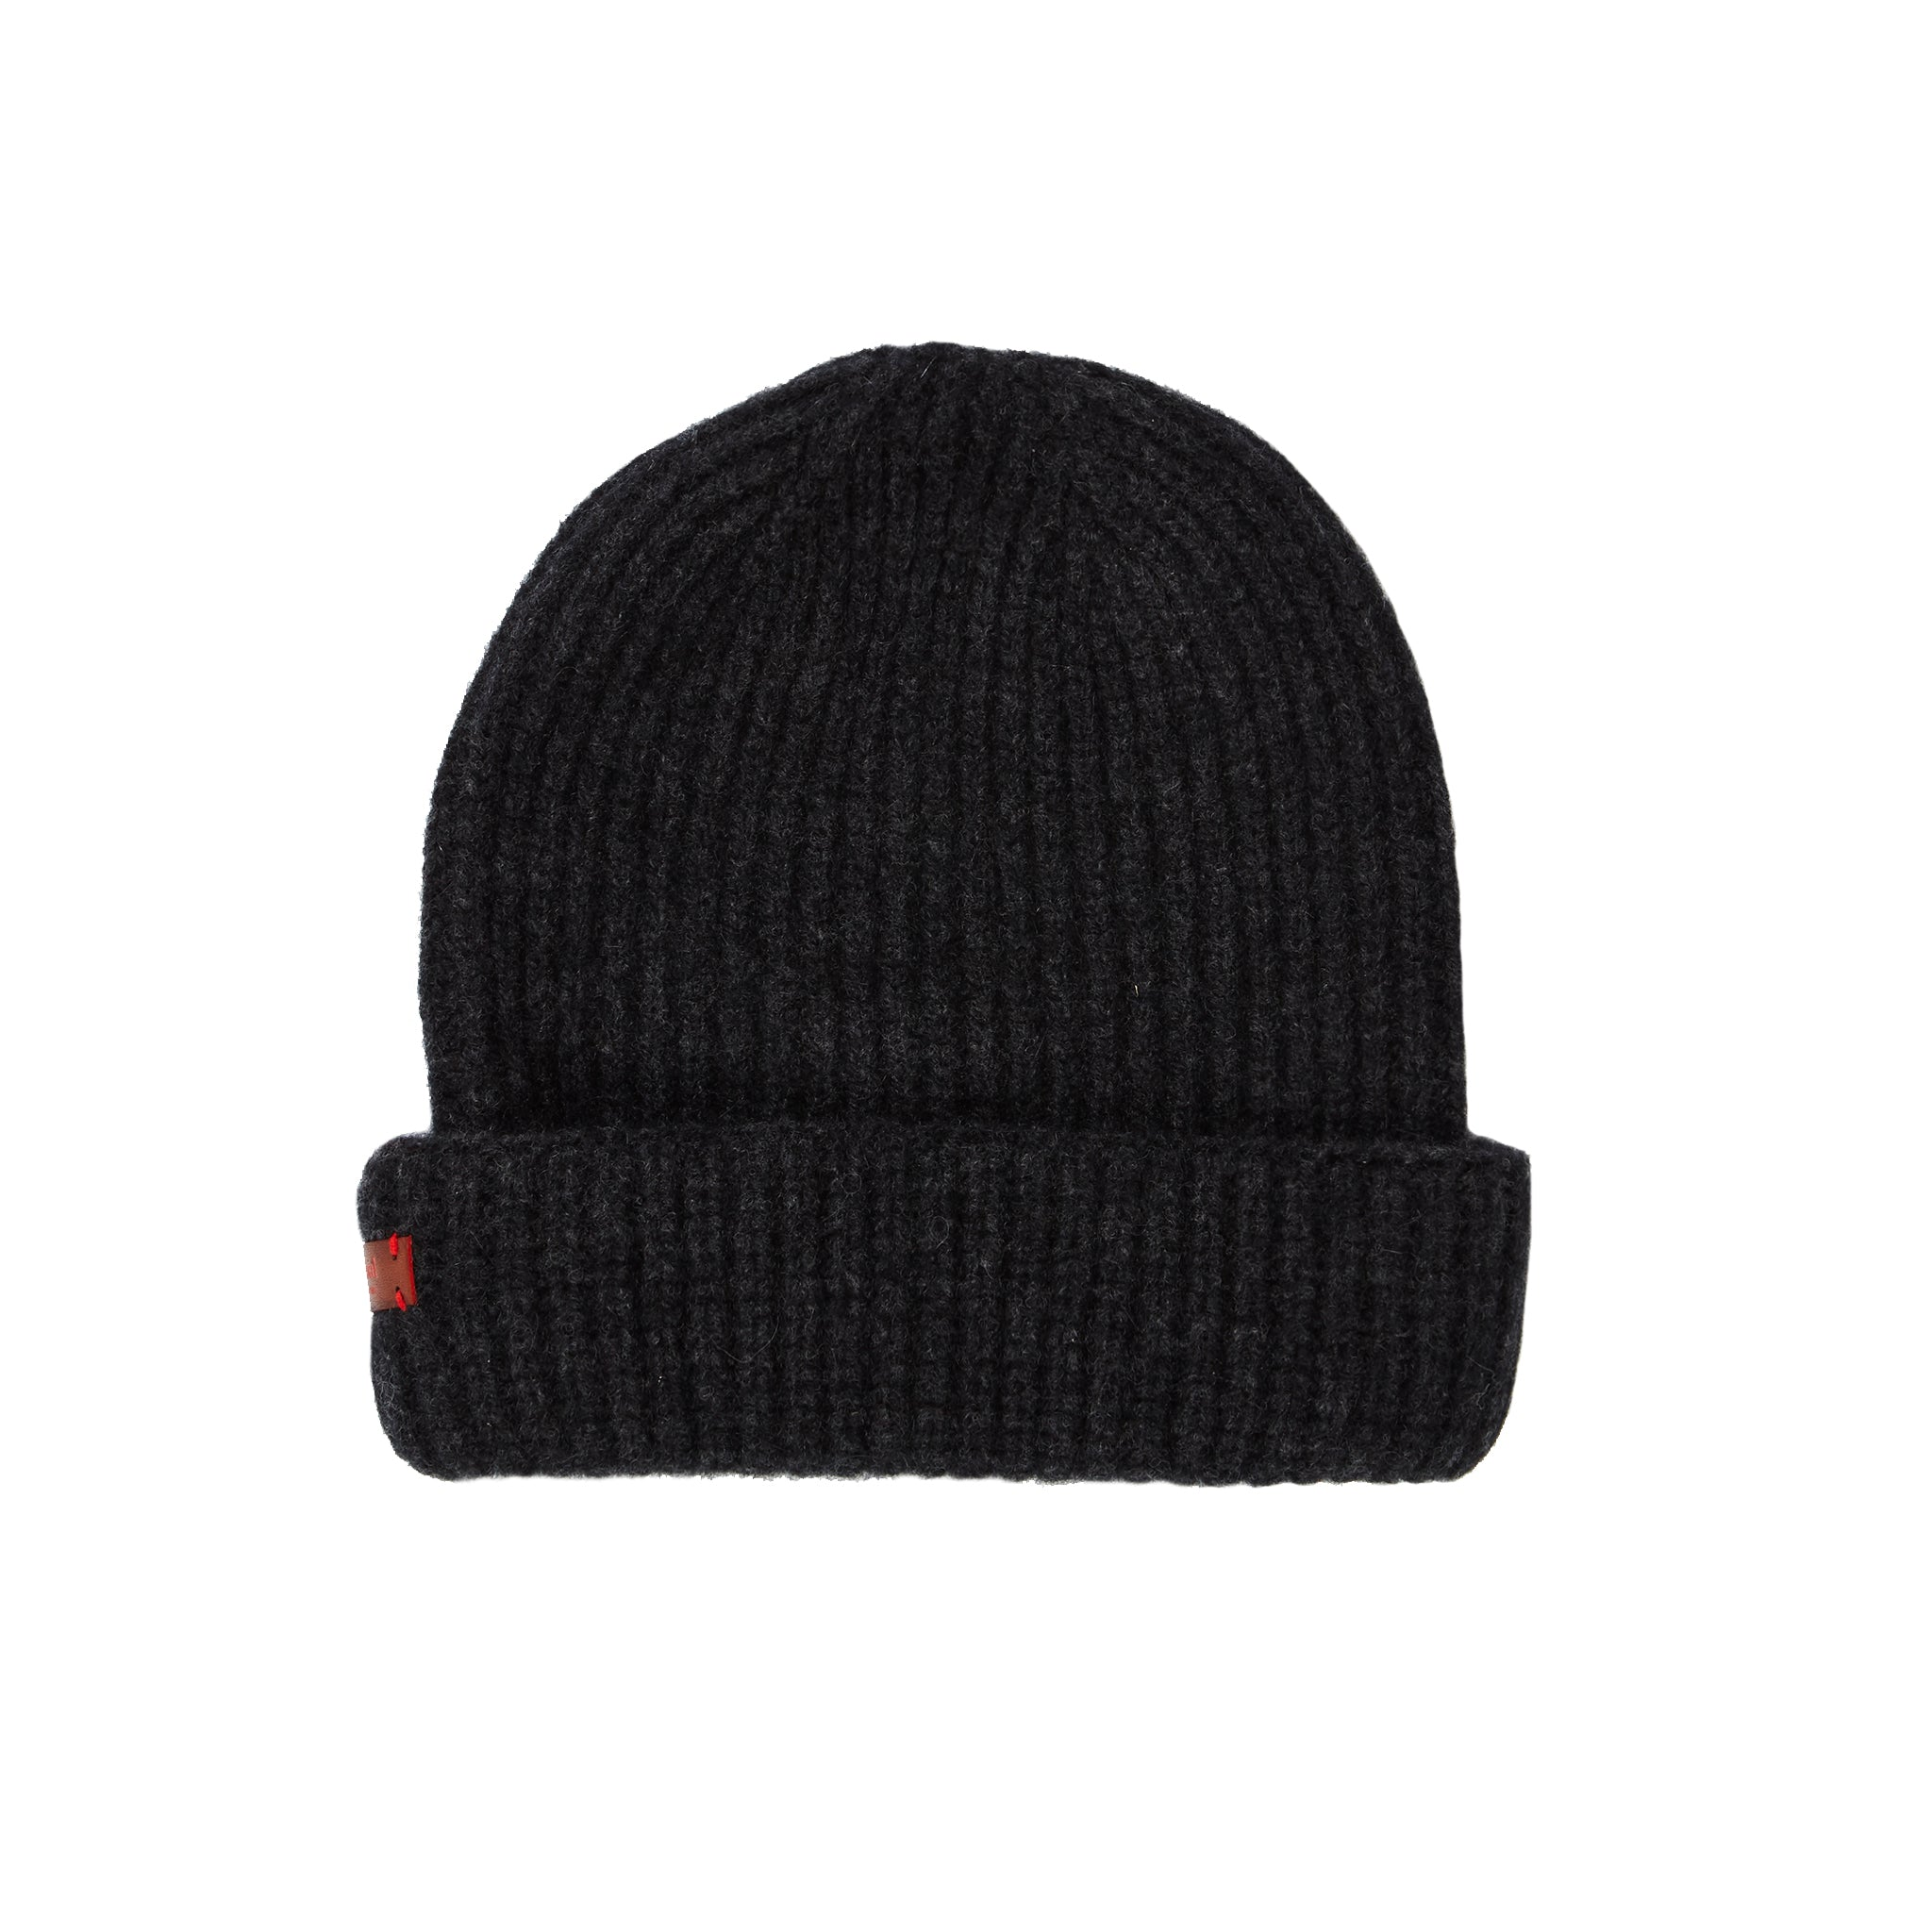 Archie Foal Kade Ribbed Beanie Hat - Charcoal